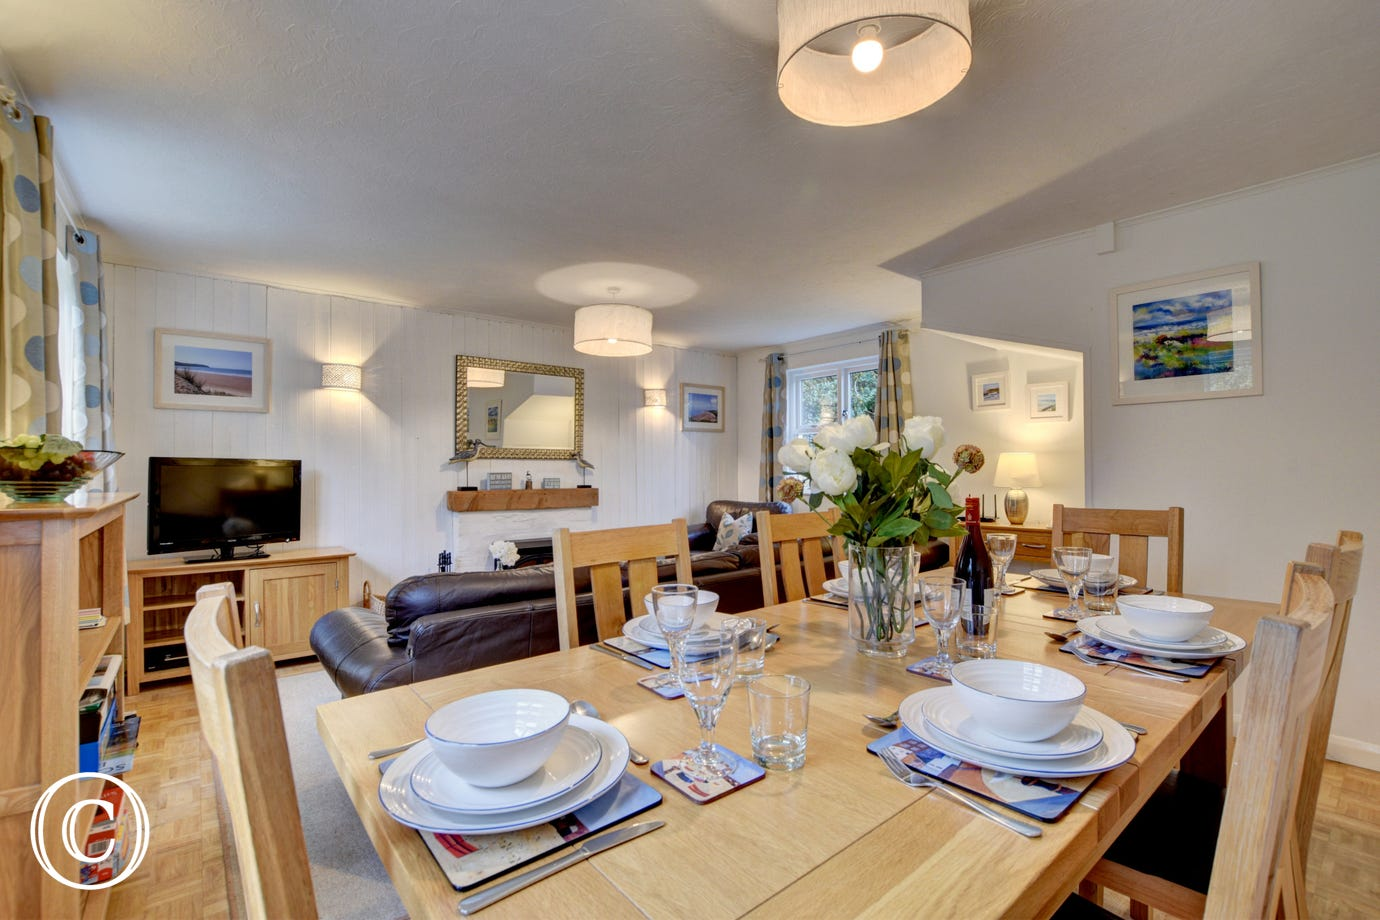 The large dining table is perfect for family meals together